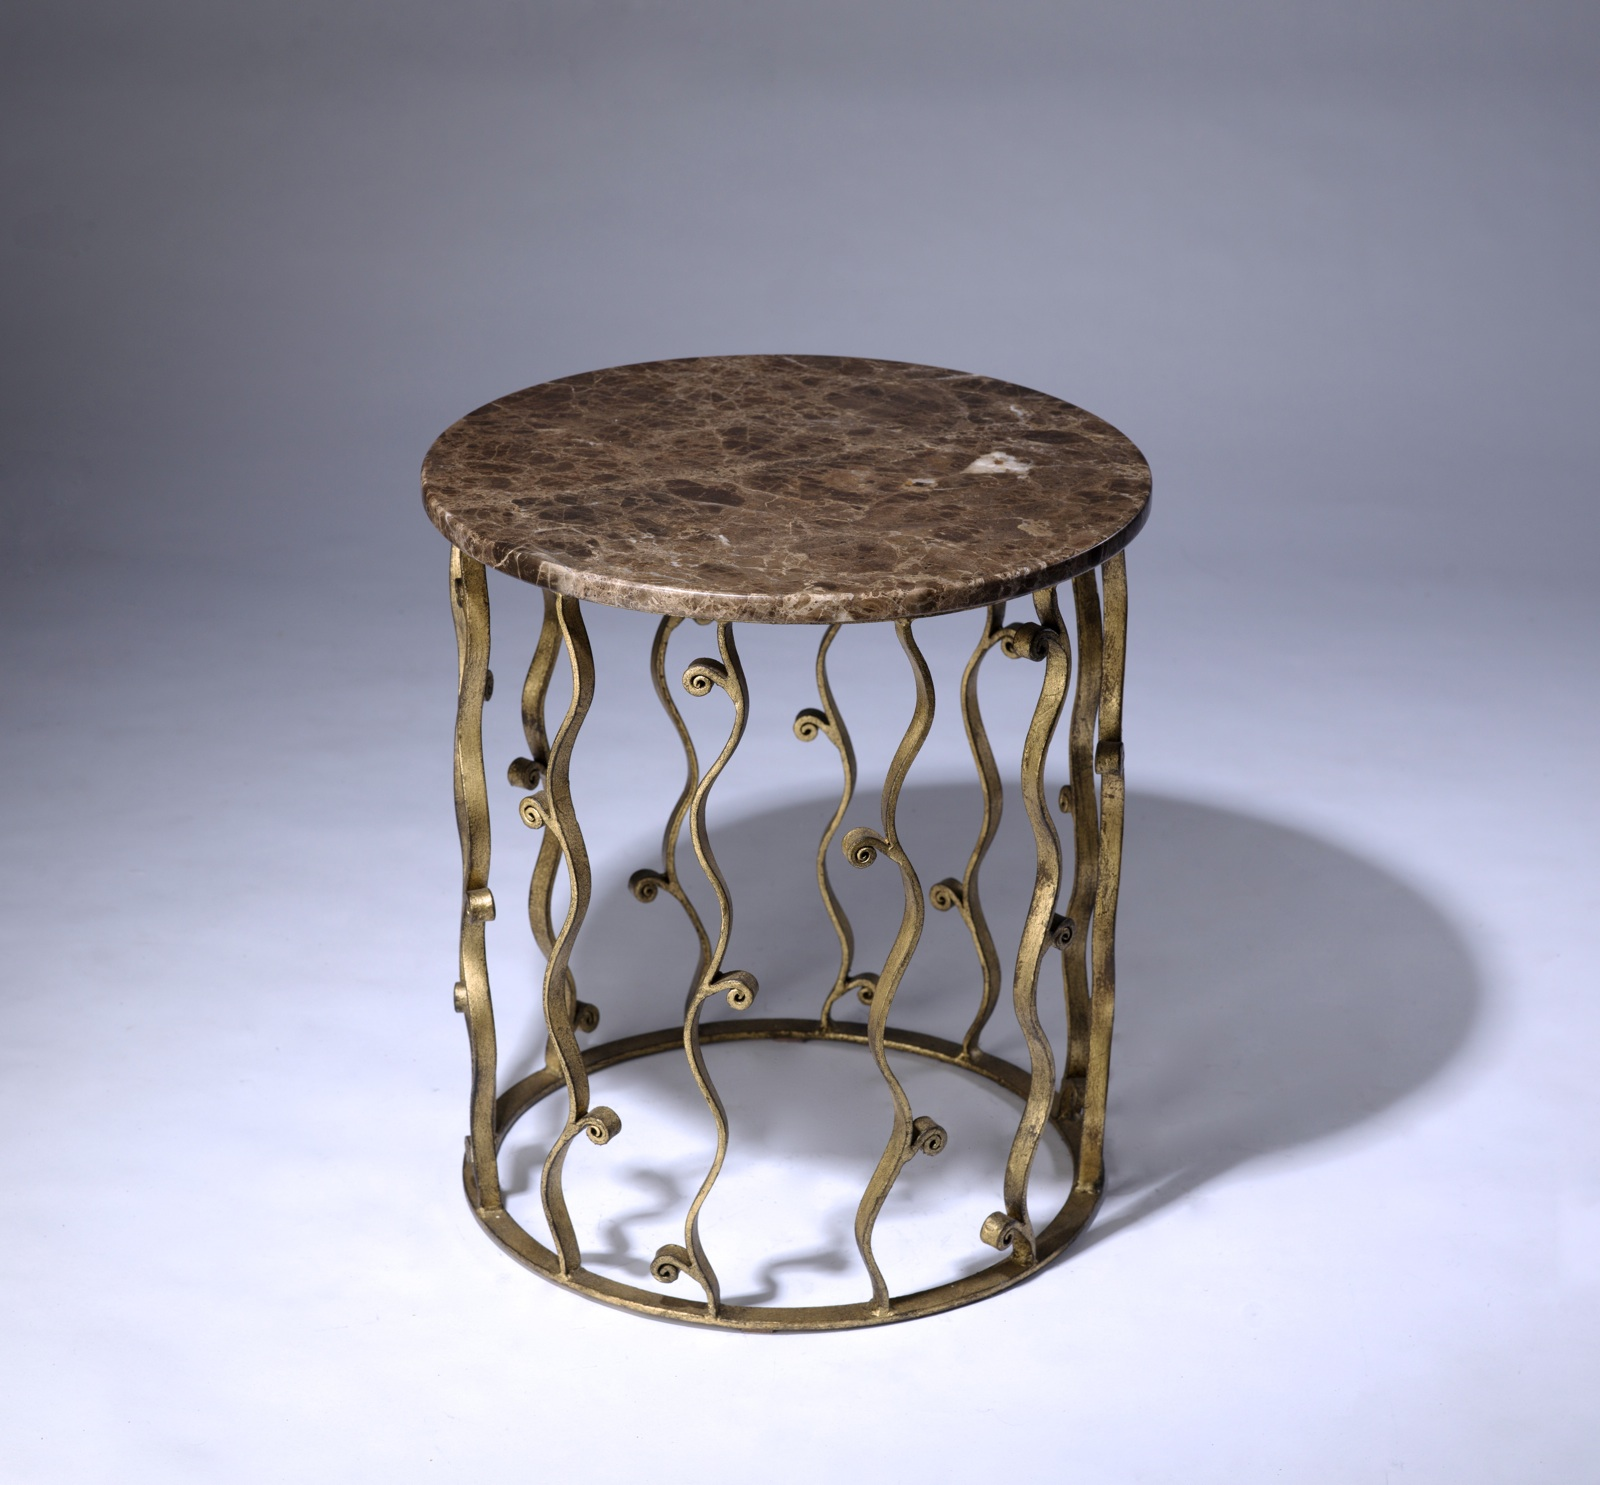 Round Wrought Iron U0027italianu0027 Side Table With Marble Top In Distressed Gold  Leaf Finish